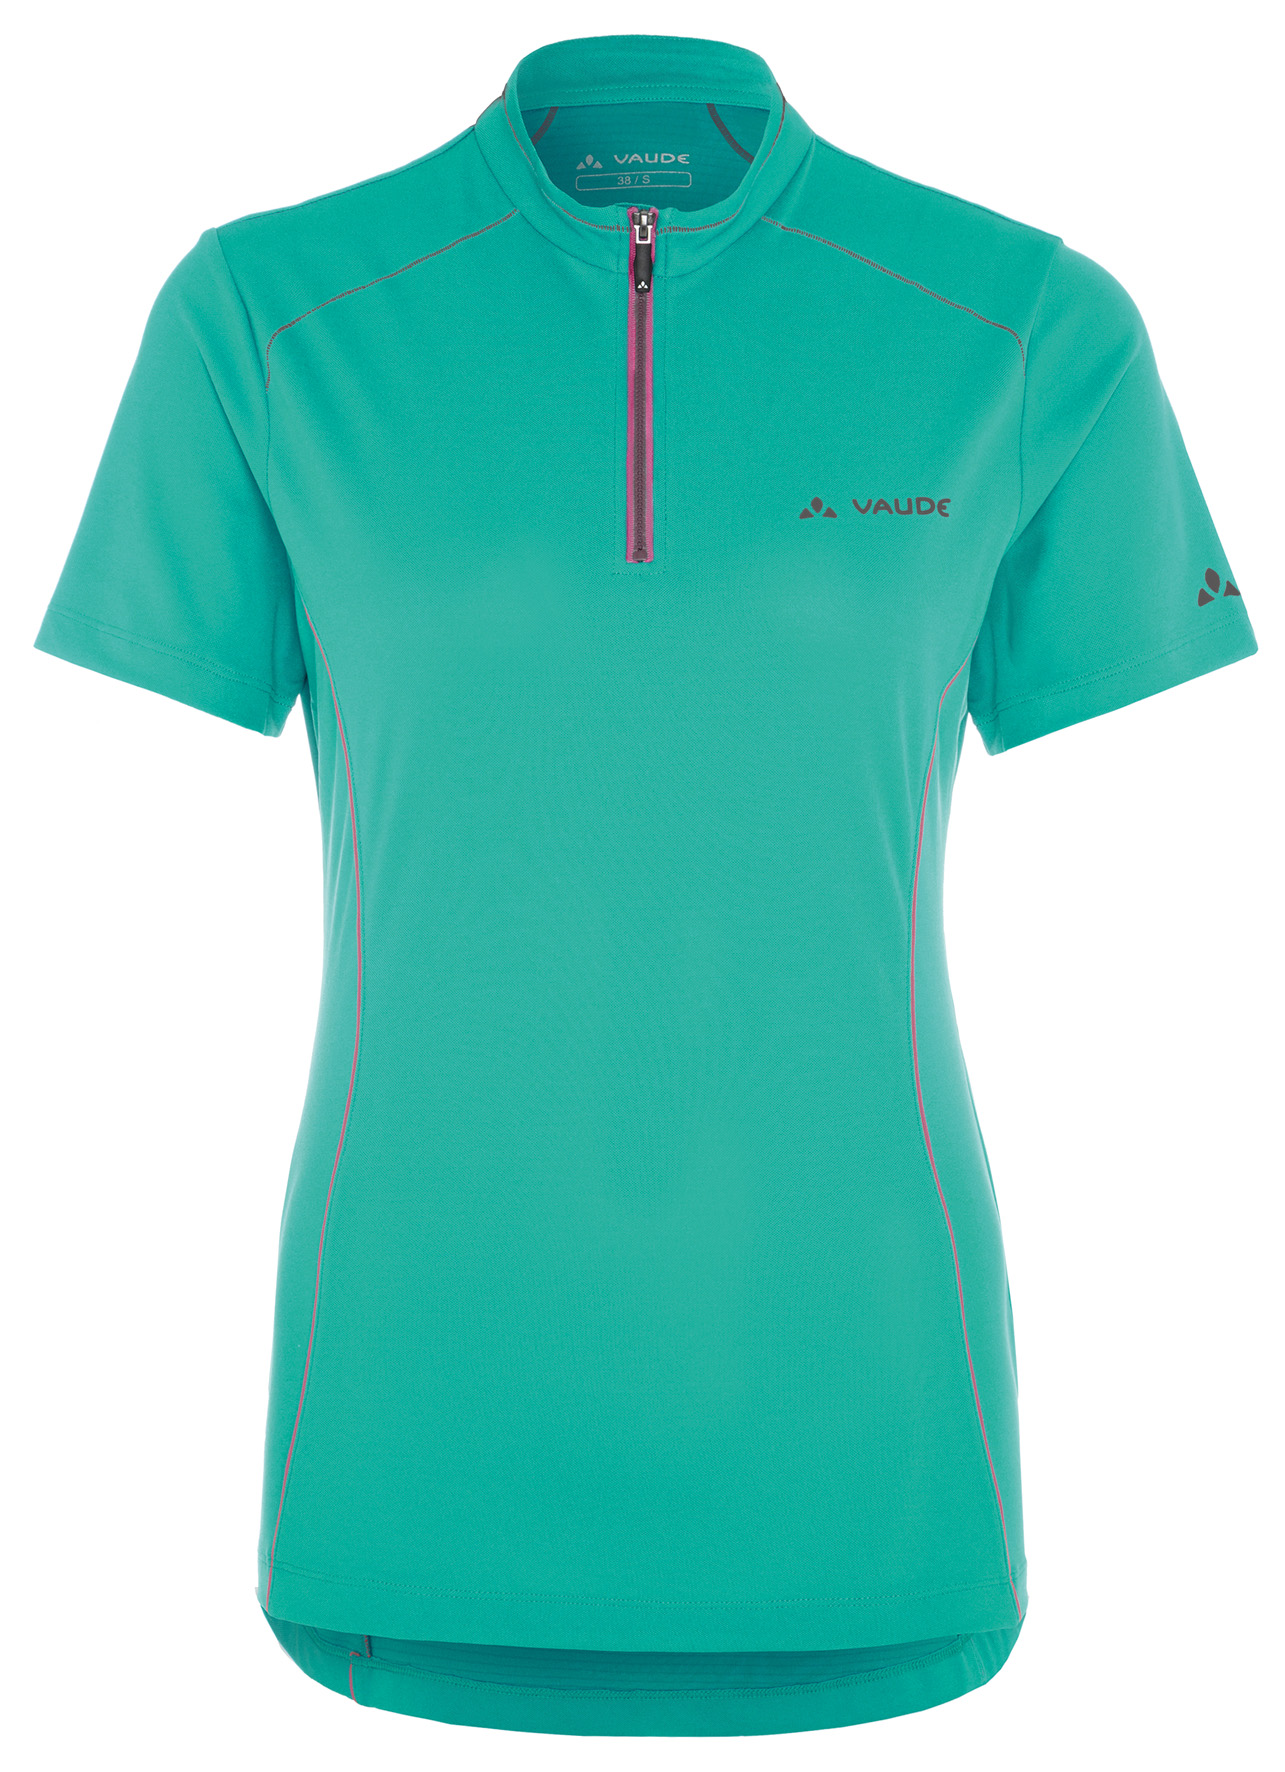 Women´s Tamaro Shirt lotus green Größe 36 - schneider-sports